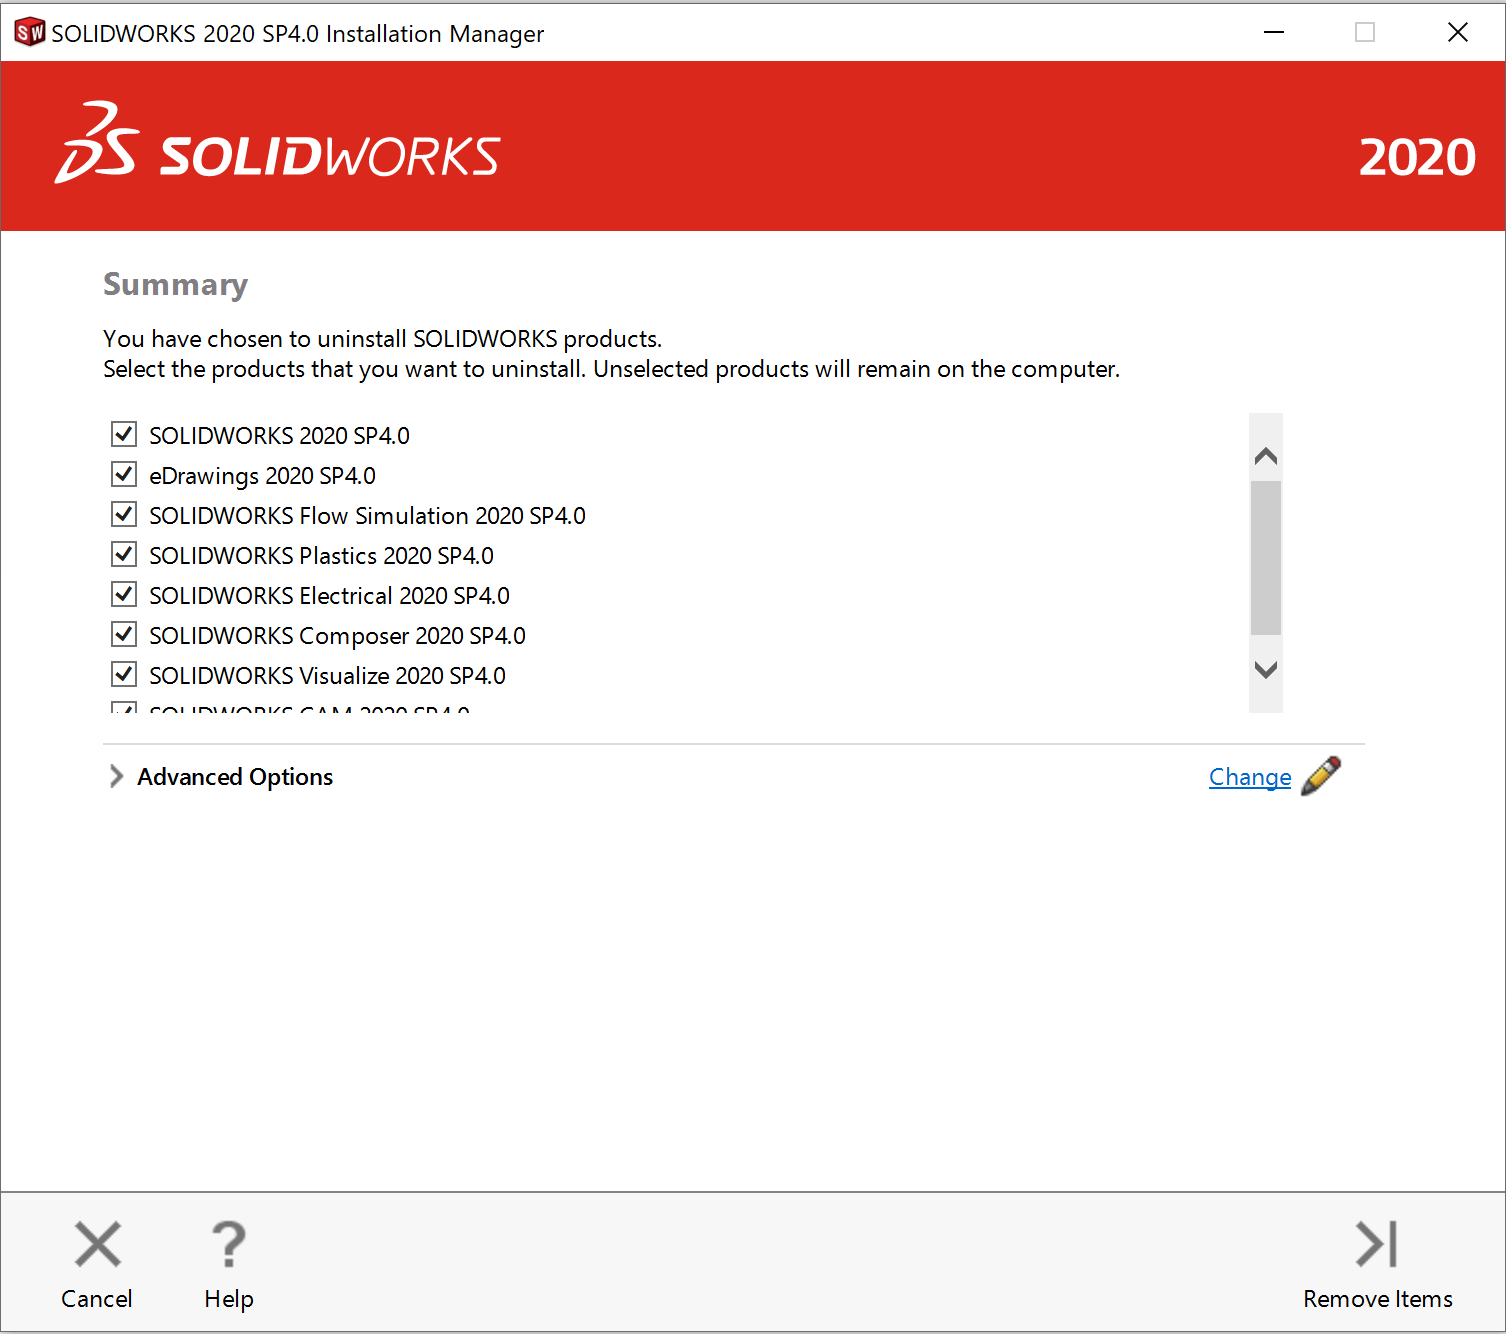 SOLIDWORKS Installation Manager will open and give several program options with check boxes next to them. All the checkboxes are checked off. On the bottom of this, there will be a cancel, help, and remove items buttons.